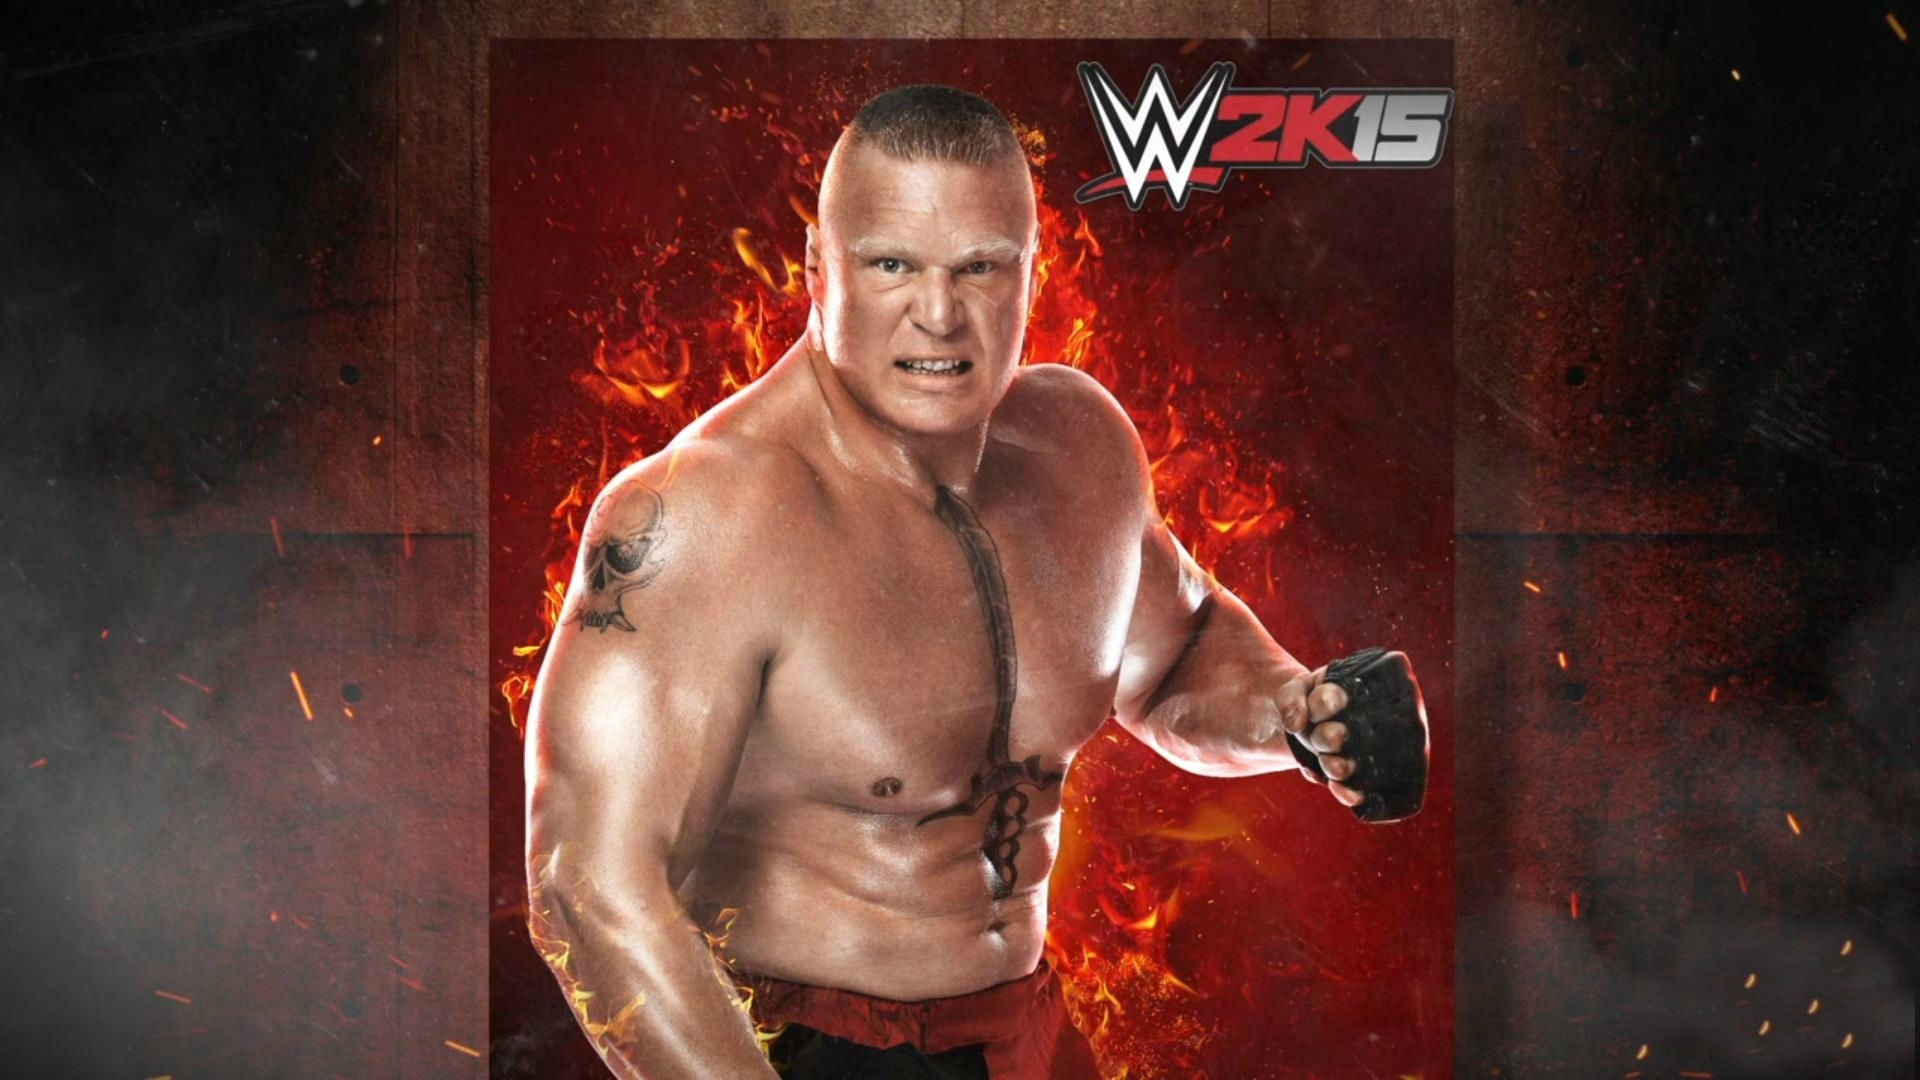 Wwe Wallpapers Free